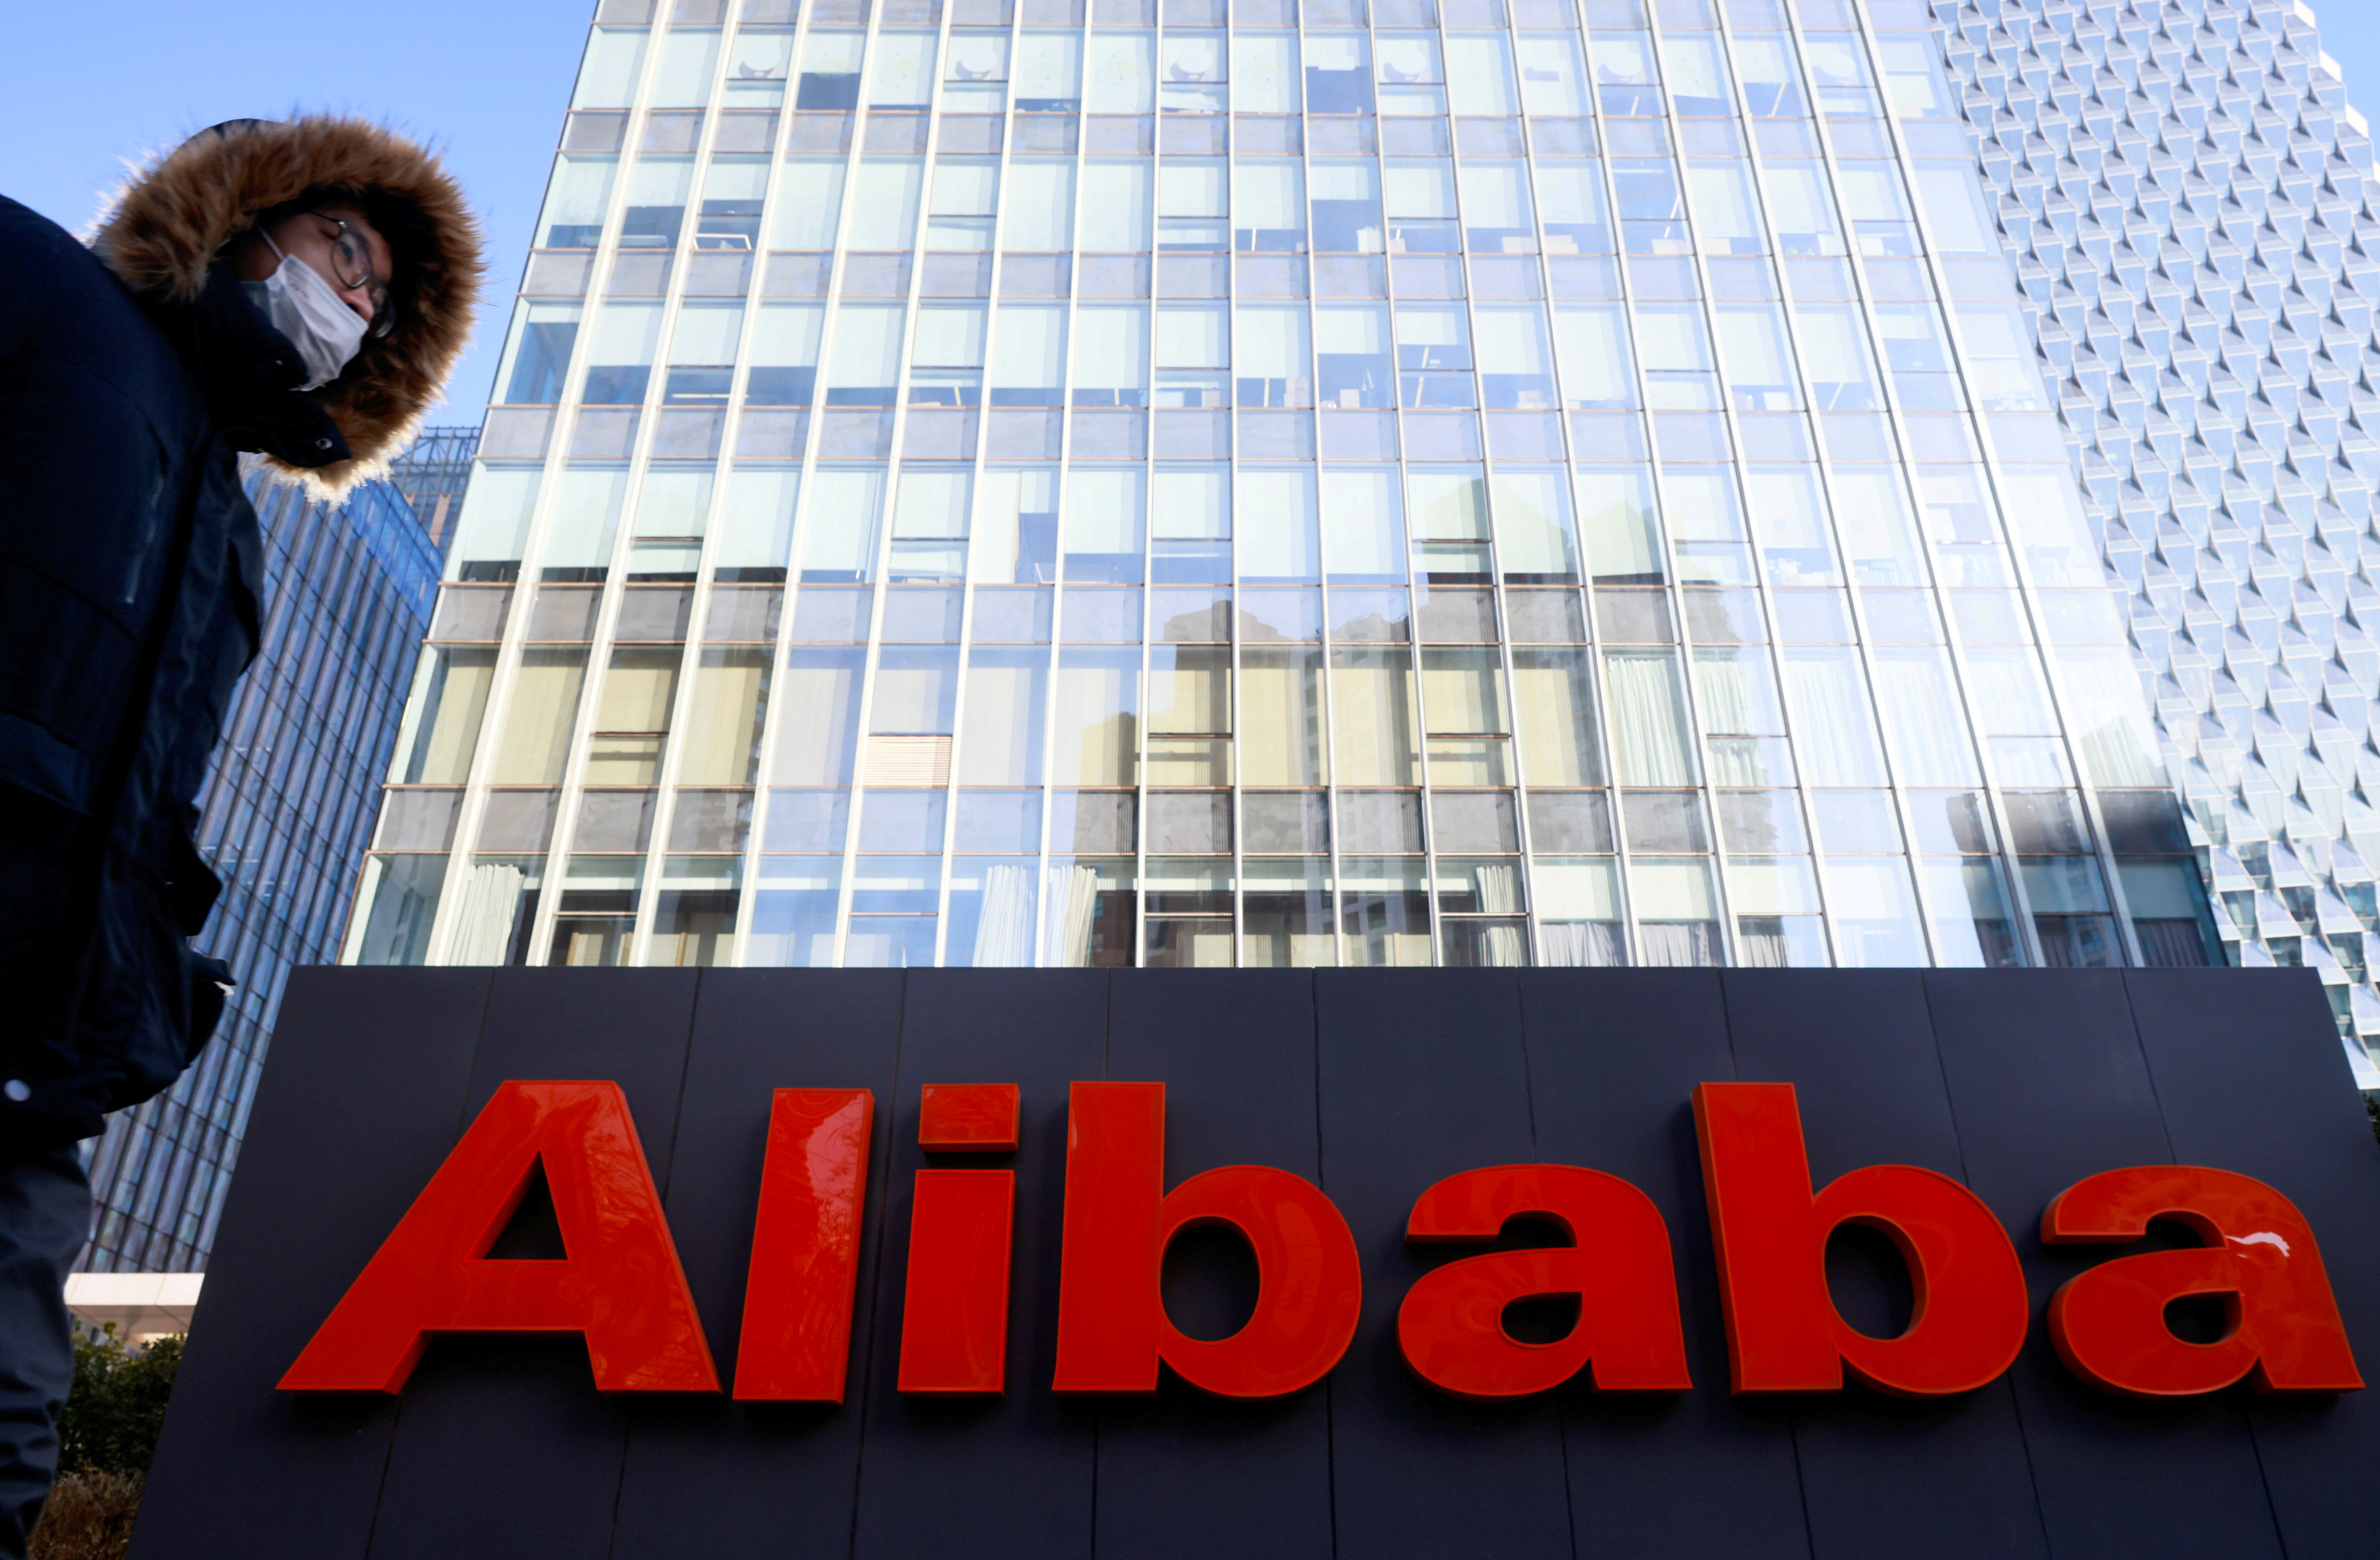 FILE PHOTO: The logo of Alibaba Group is seen at its office in Beijing, China January 5, 2021. REUTERS/Thomas Peter